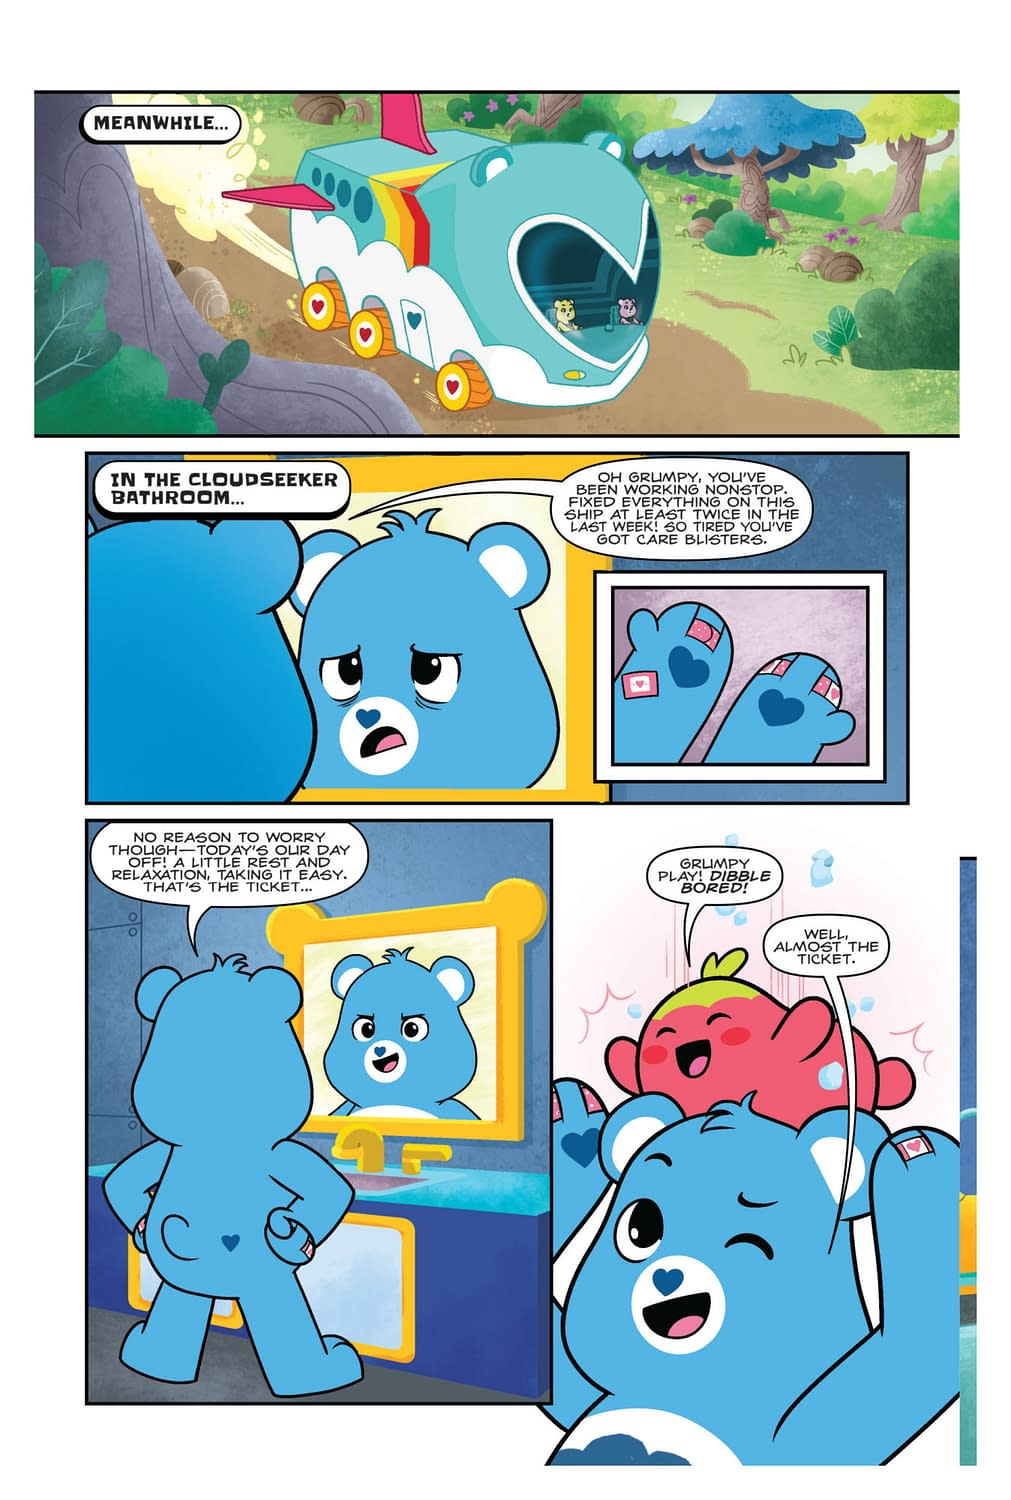 Bears vs. Climate Change and Capitalism in Care Bears: Unlock the Magic #1 (Preview)